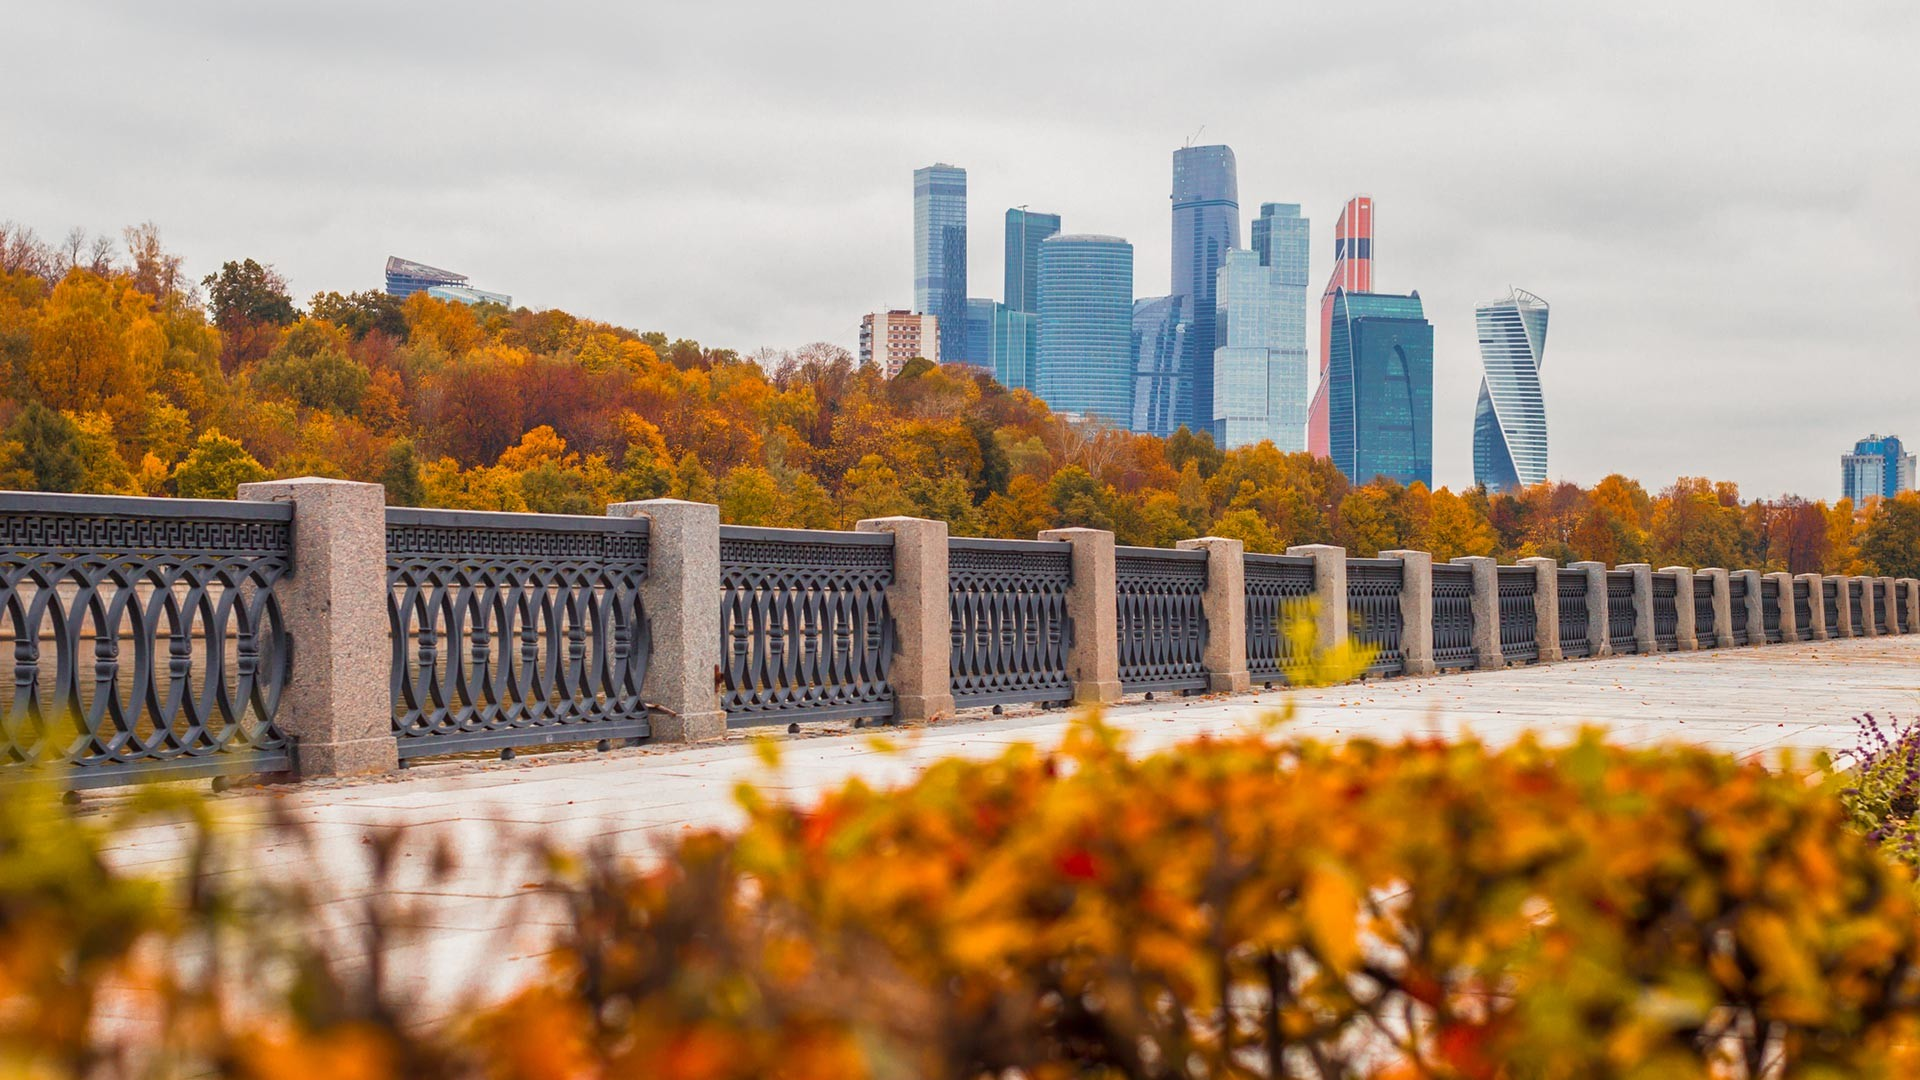 Fall on Moscow's embankments